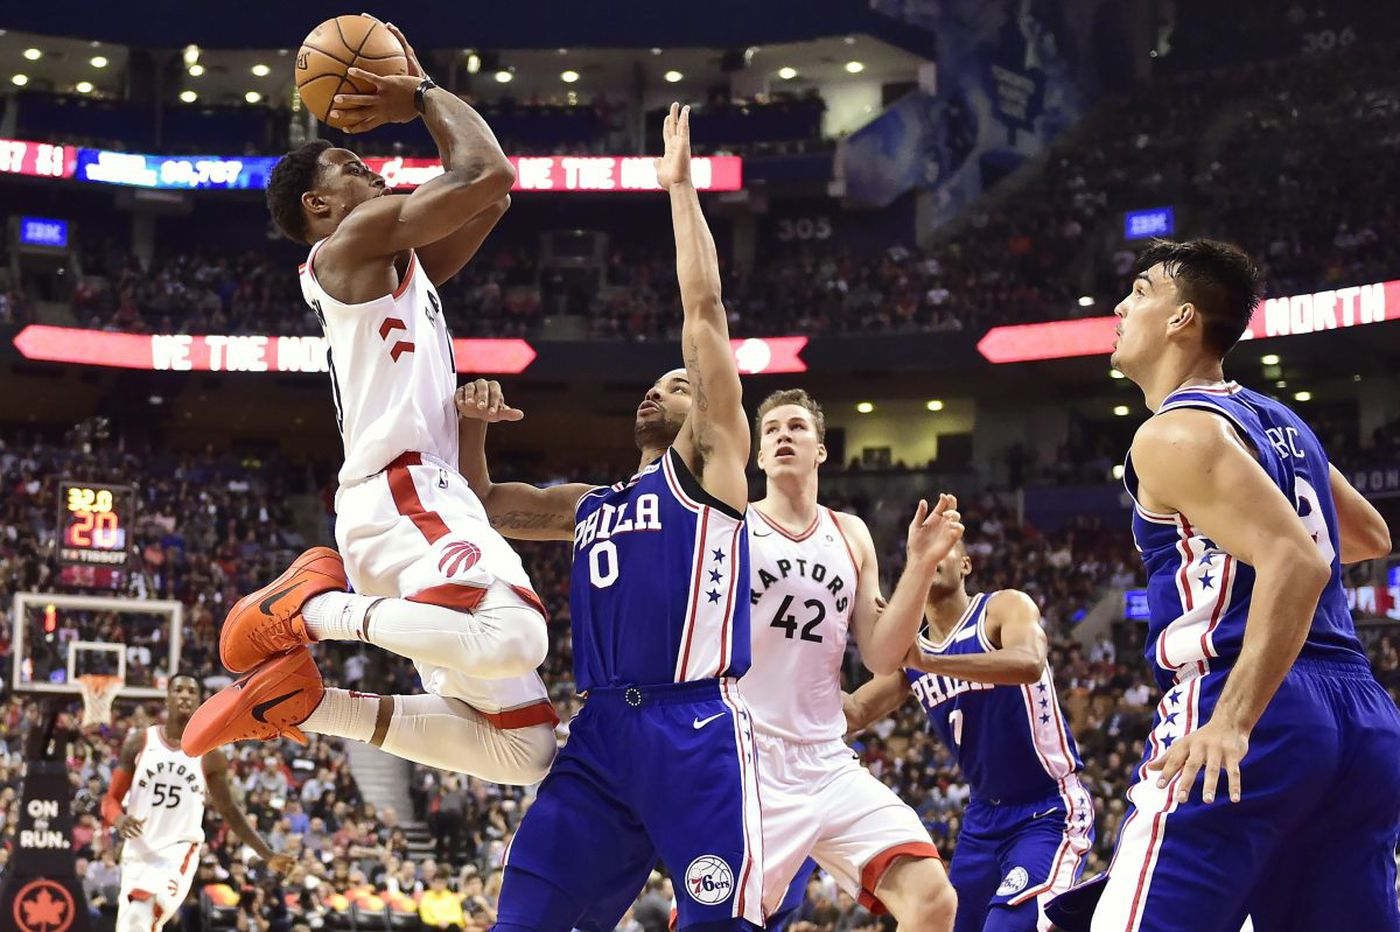 Sixers-Raptors: DeMar DeRozan, Kyle Lowry could make things ugly for Philly, again